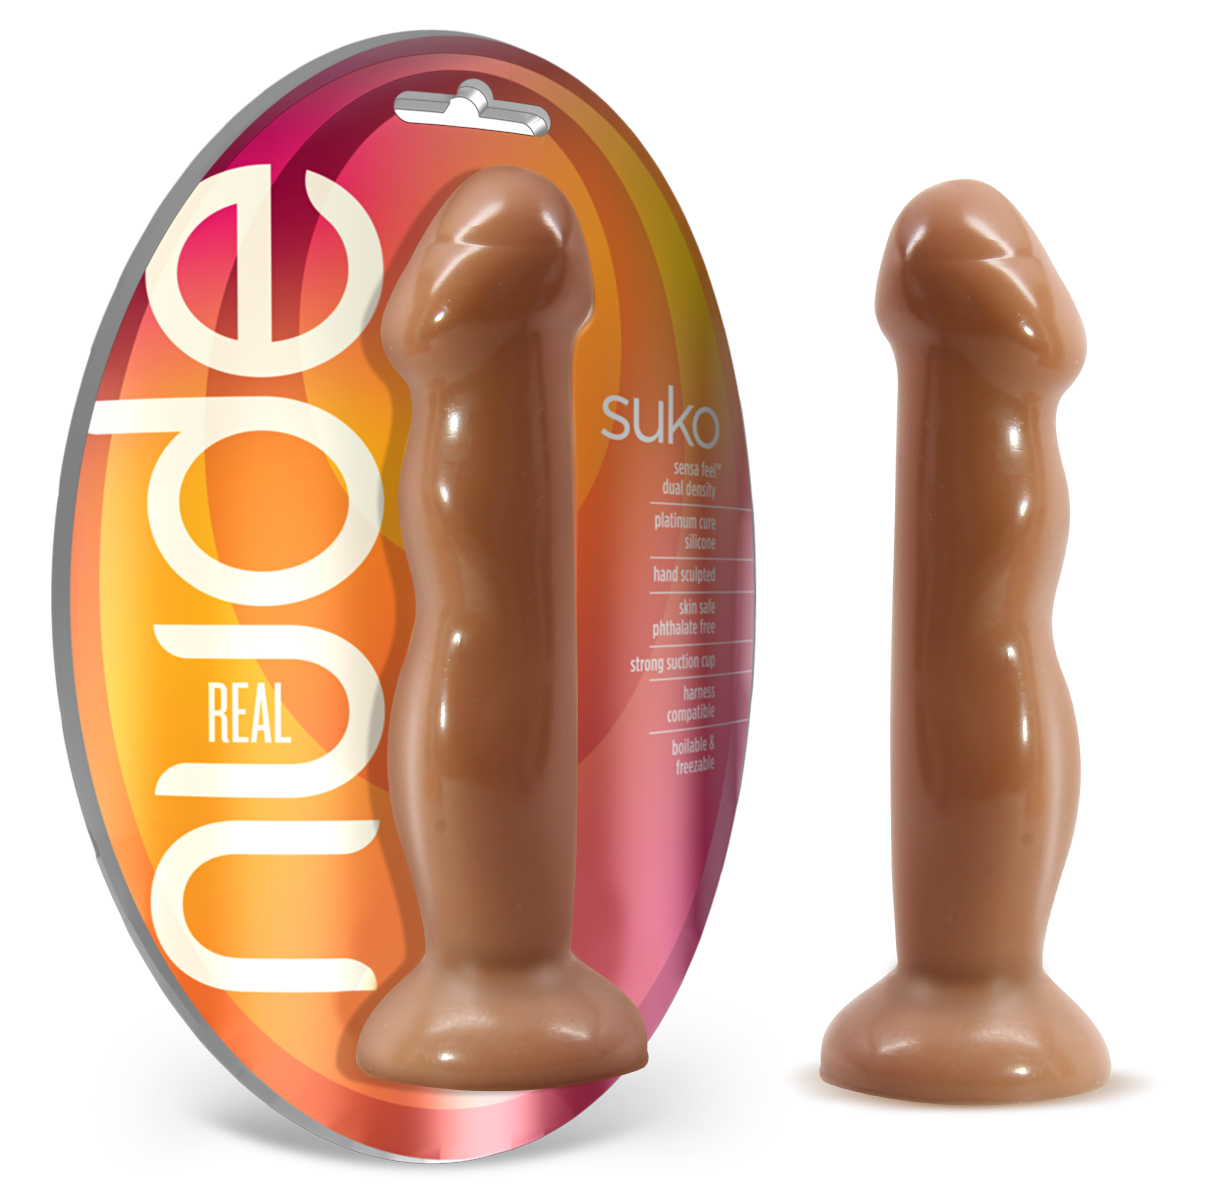 Real Nude - Suko - Toffee